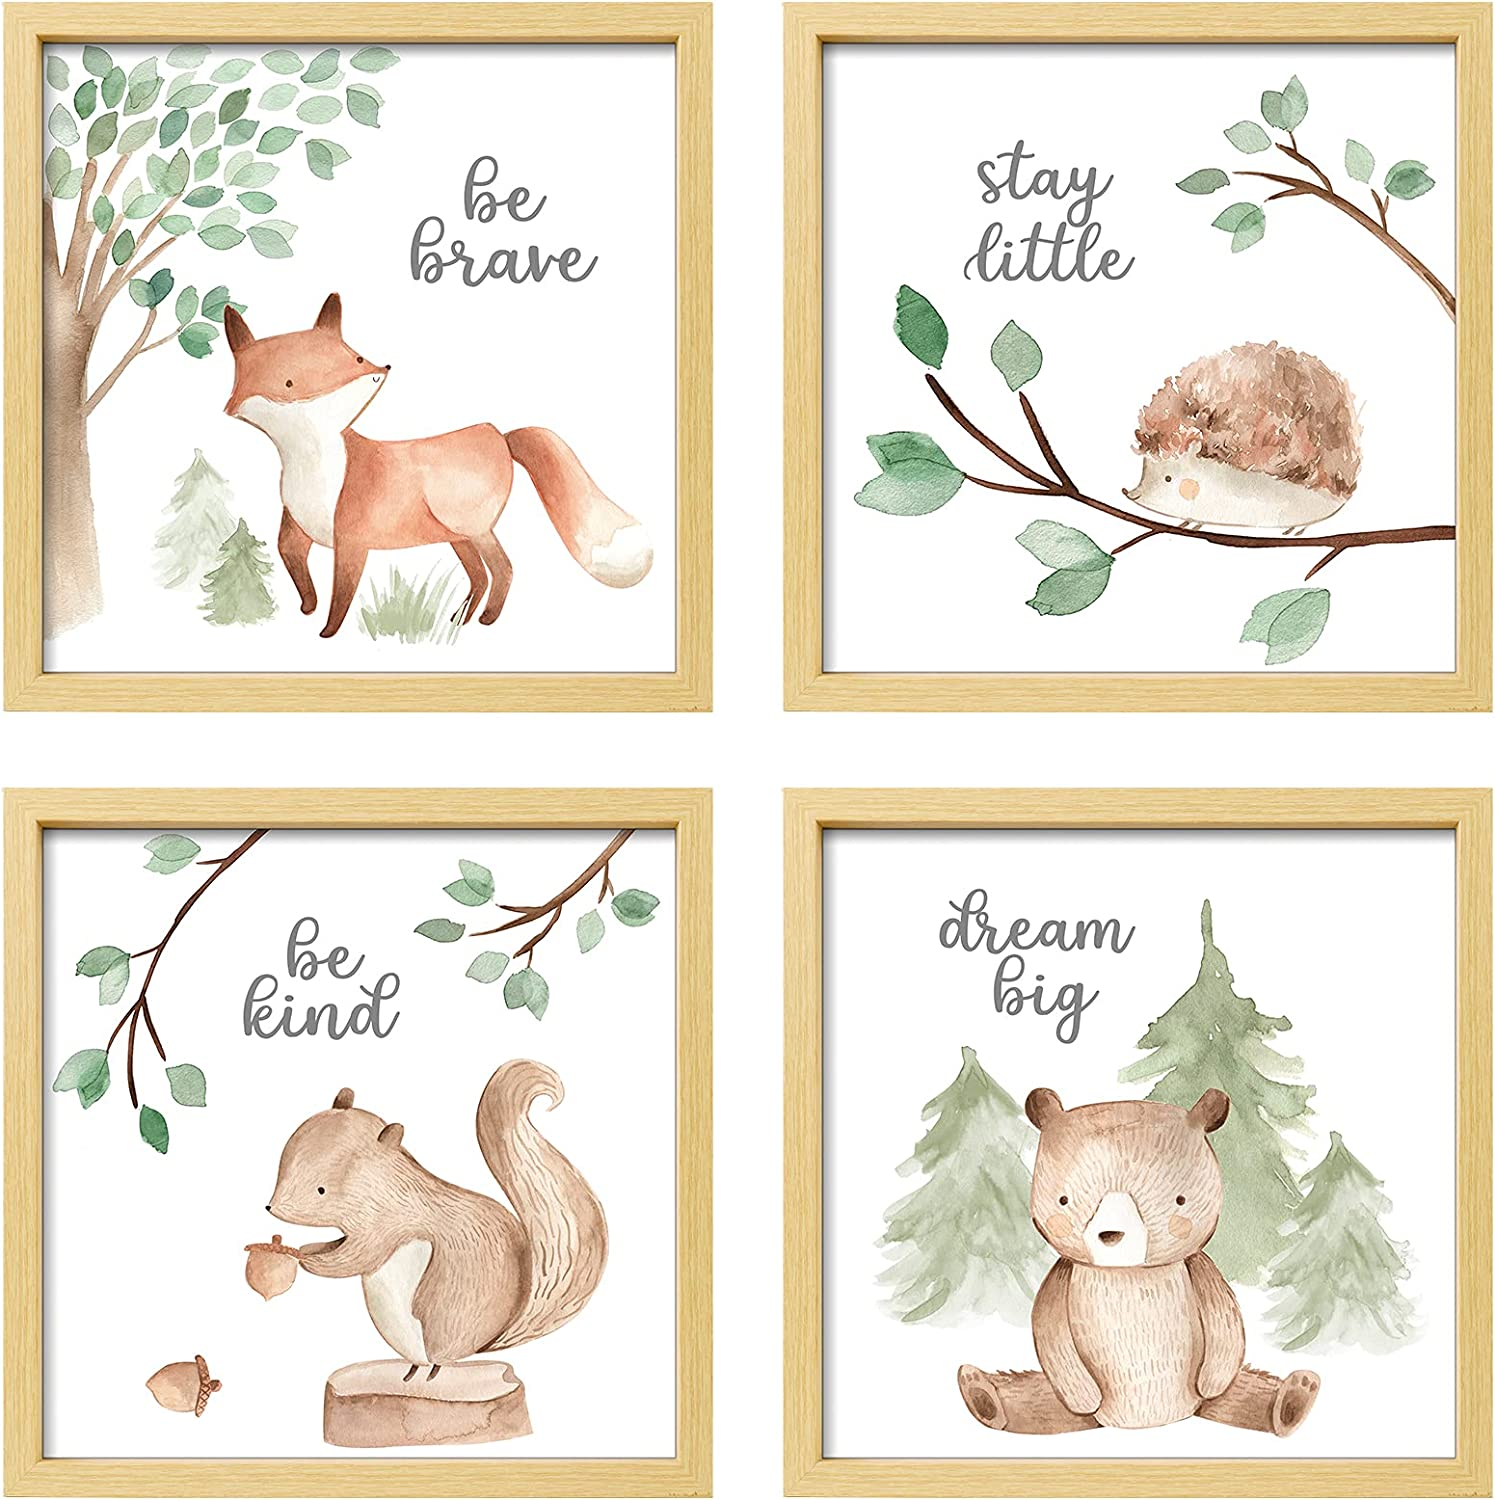 ArtbyHannah 12x12 Inch Picture Frames Framed Woodland Nursery Wall Decor, 4 Pcs Photo Frames with Cute Watercolor Squirrel Forest Animals Nursery Wall Art Prints Gallery Kit Wall Art Decor for Kids Room Girls Boys playroom, Nursery Room Or Home Wall Hanging Decoration